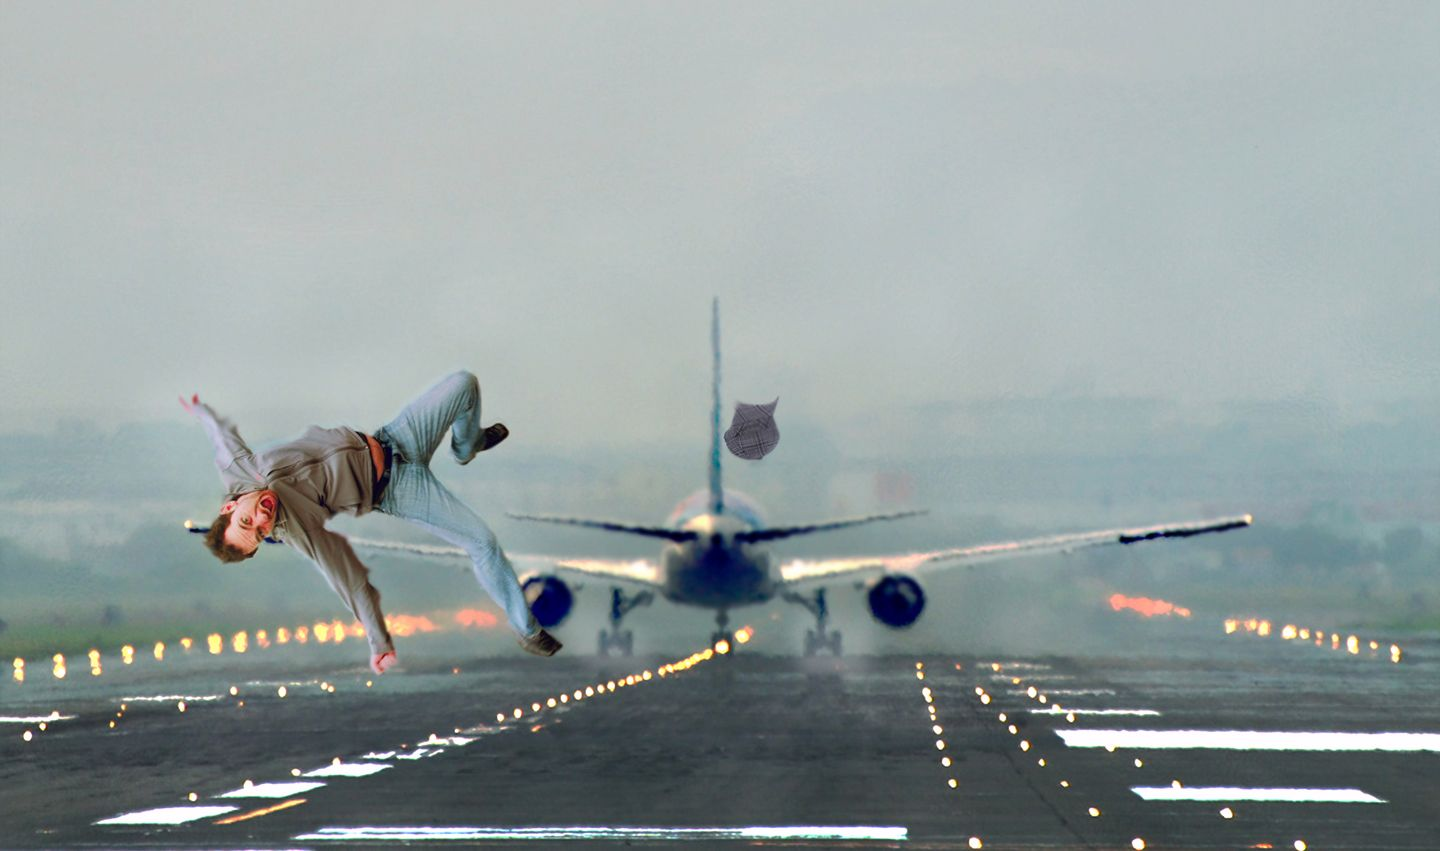 Wake Turbulence picture, by lchappell for: movie night ...